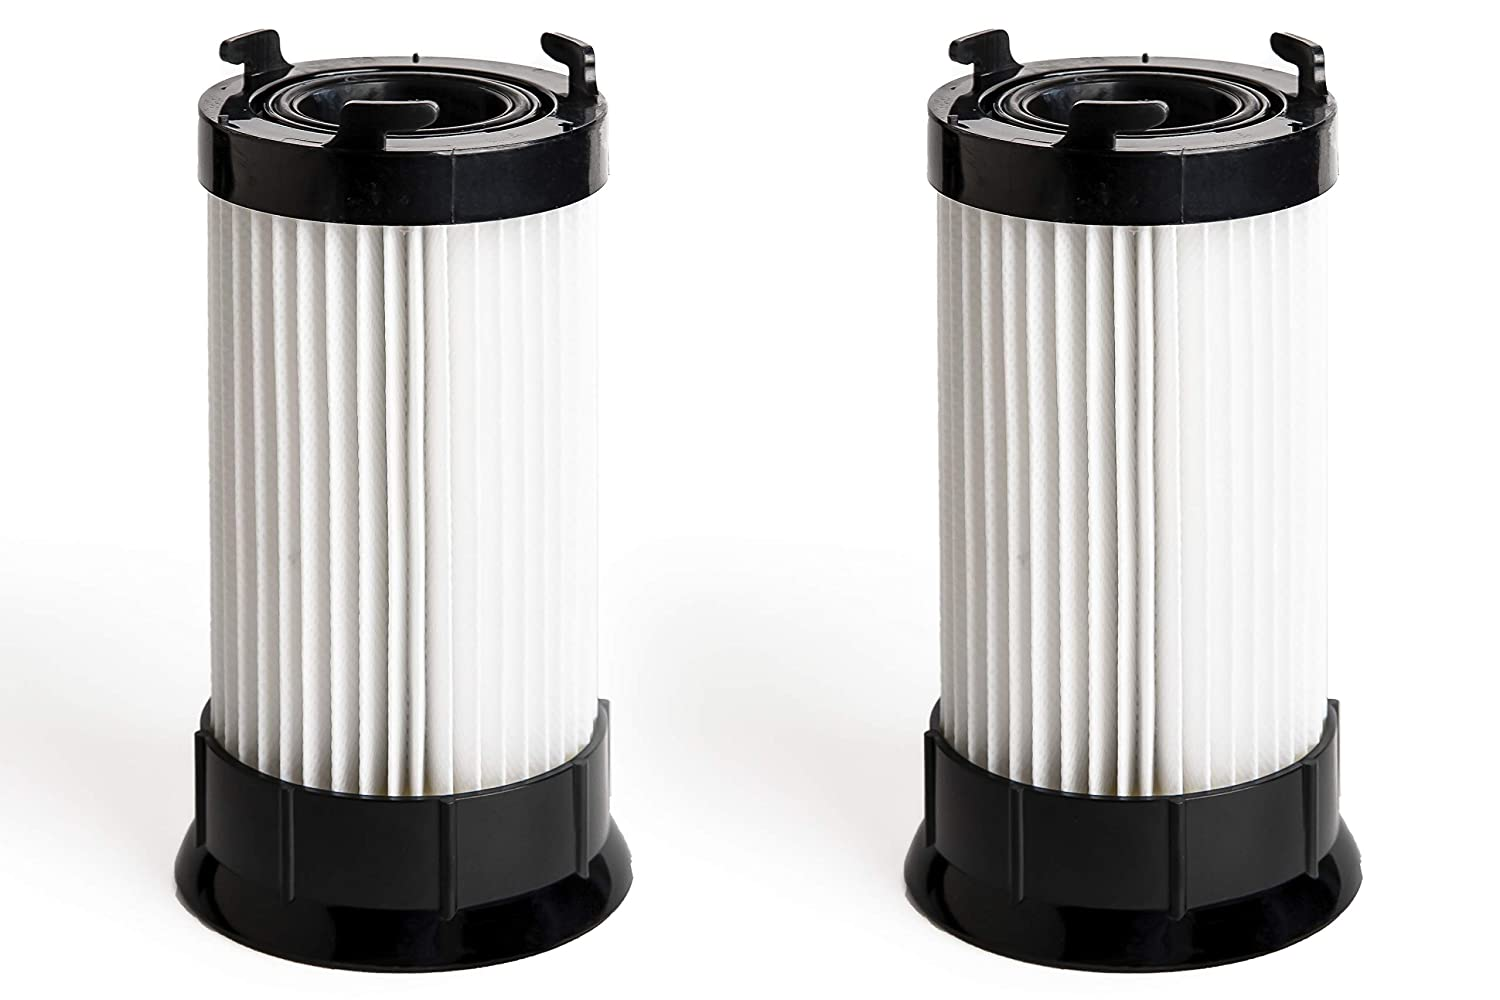 Green Label 2 Pack for Eureka Type DCF4/DCF18 Filter for 4700 and 5500 series Eureka Upright Vacuum Cleaners. Compares to DCF-4, DCF-18, 63073C, 62132, 63073, 3690, 18505. Fits: 4700, 5500 series